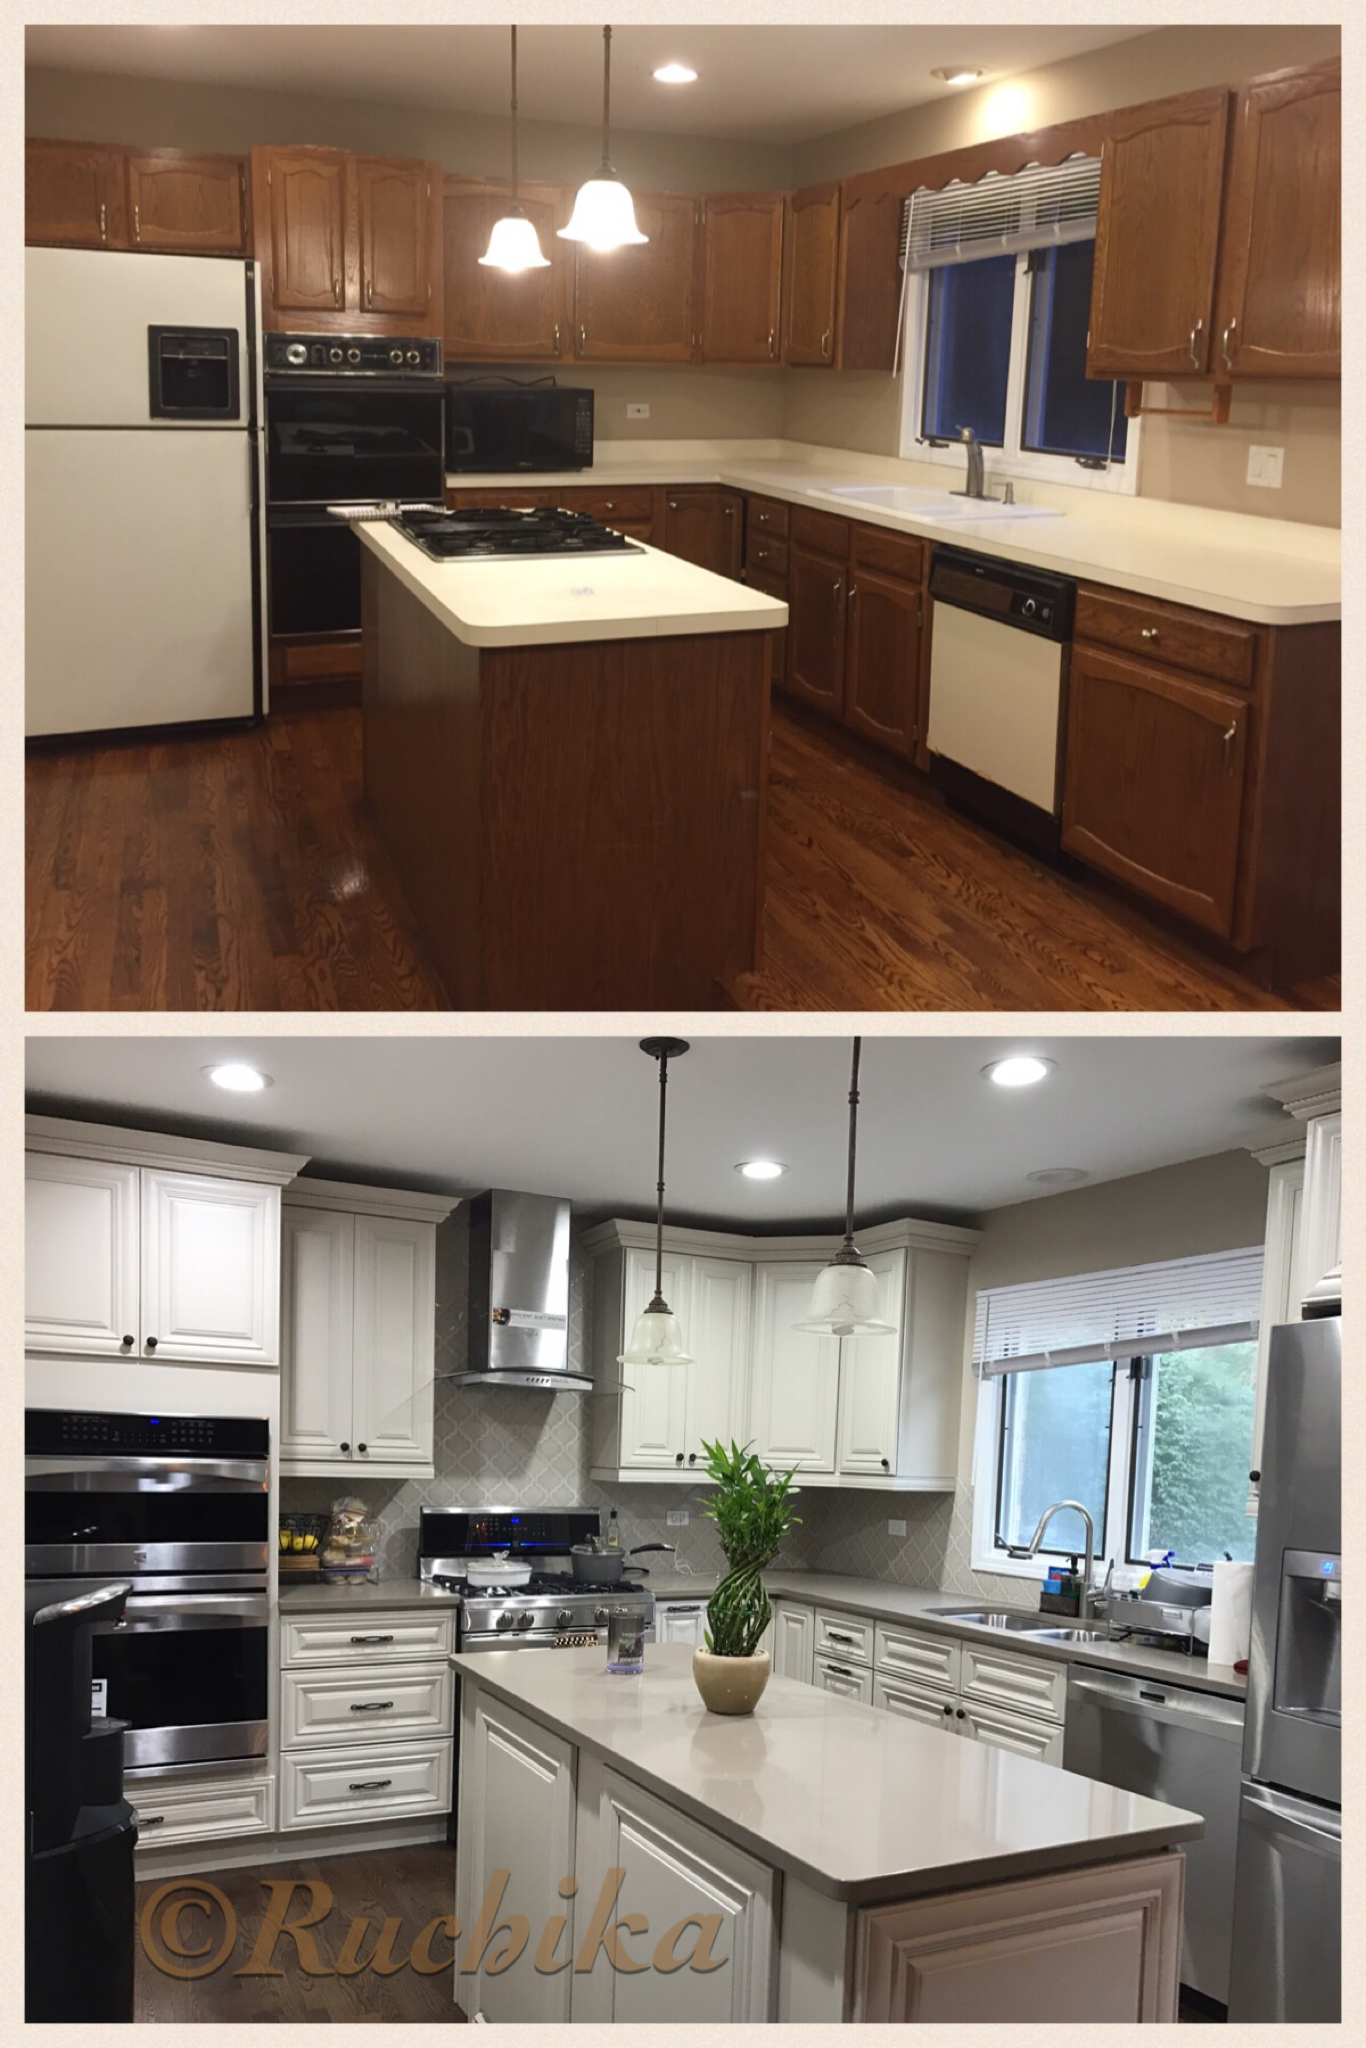 Complete Kitchen Remodel By Me... Classic Ivory, Quartz